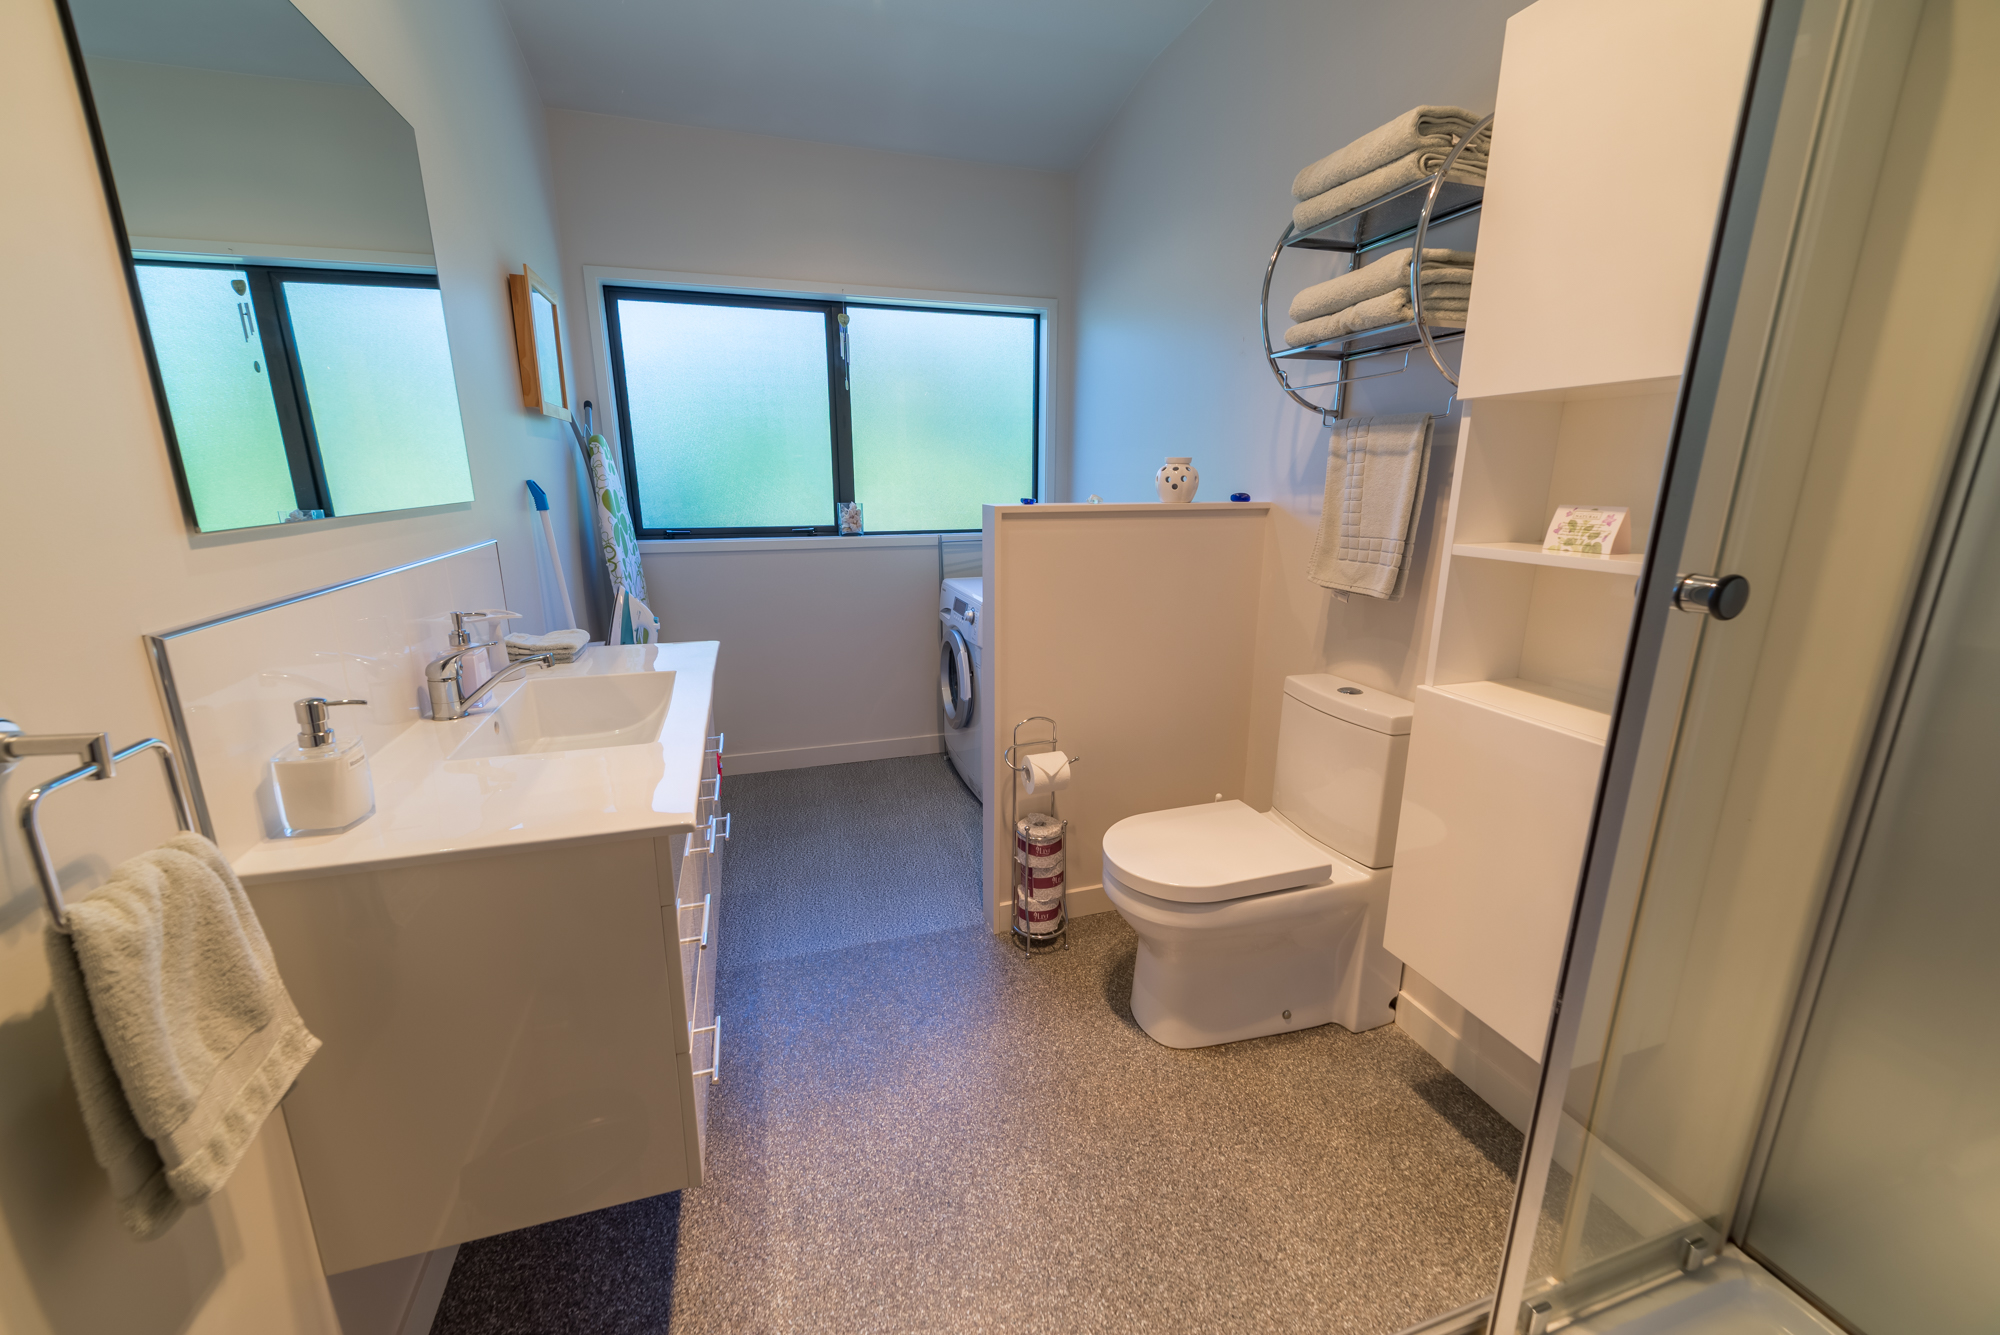 Apartment bathroom and laundry